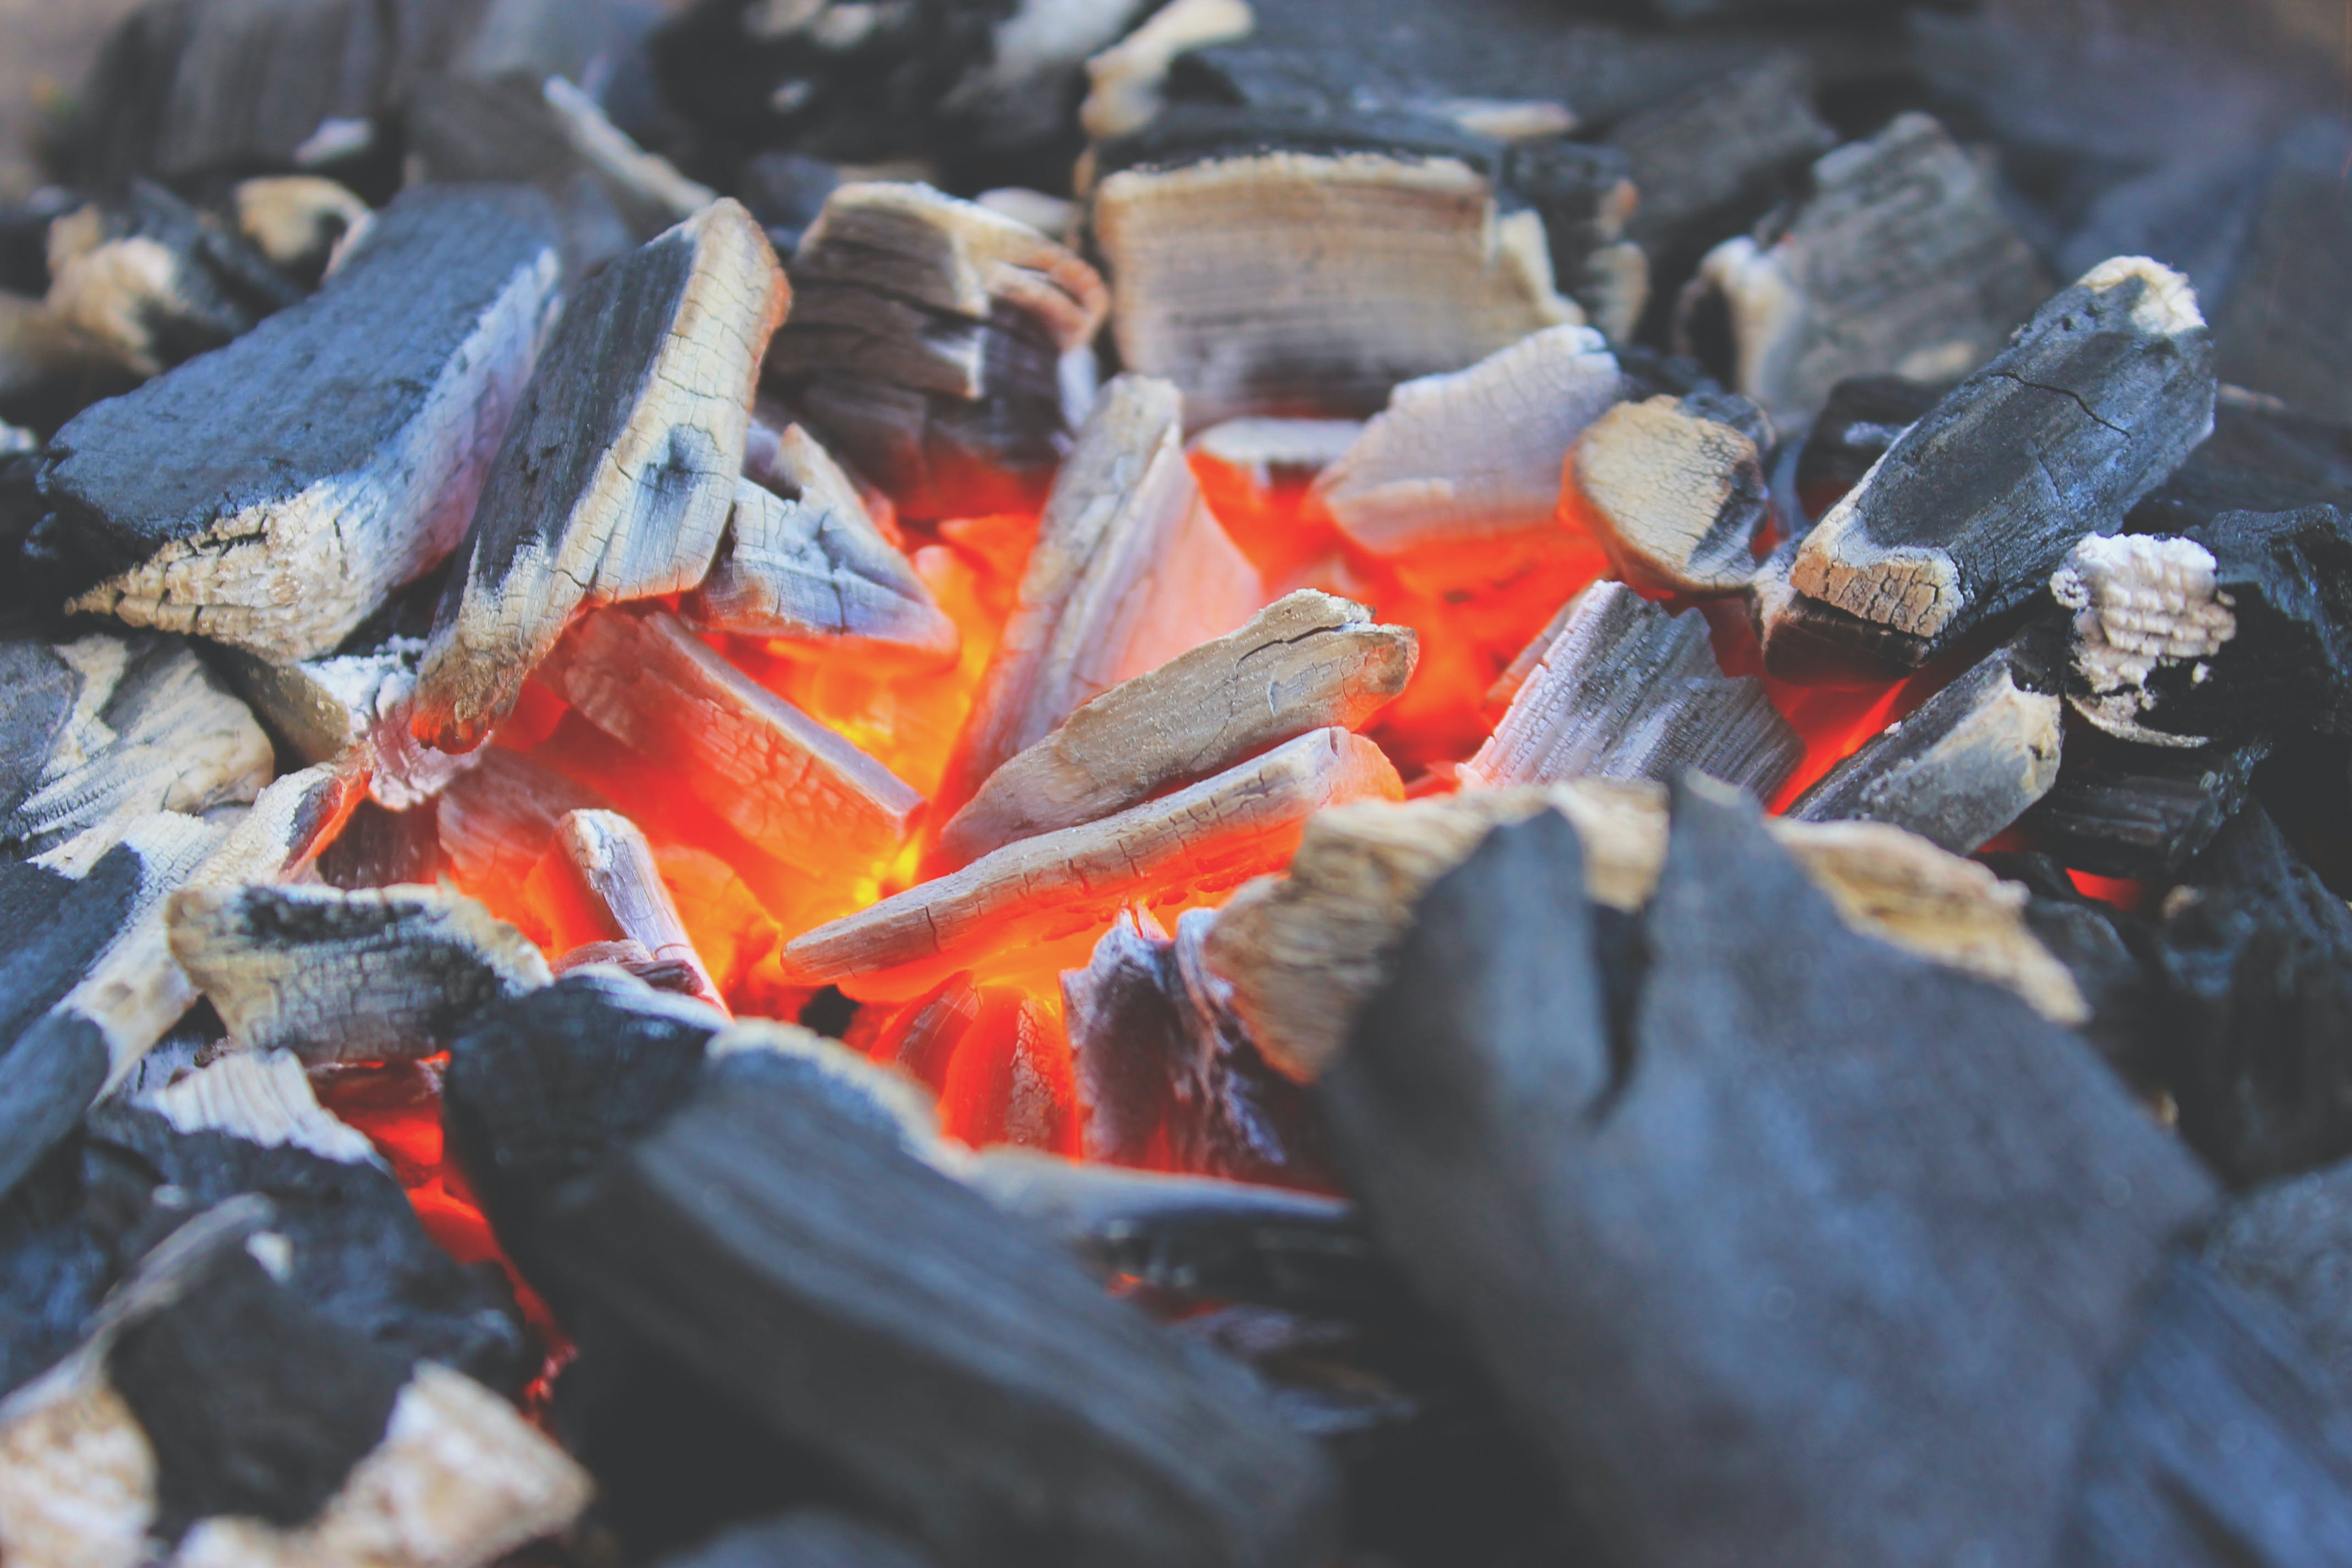 Free stock photo of fire, grill, grilling, embers